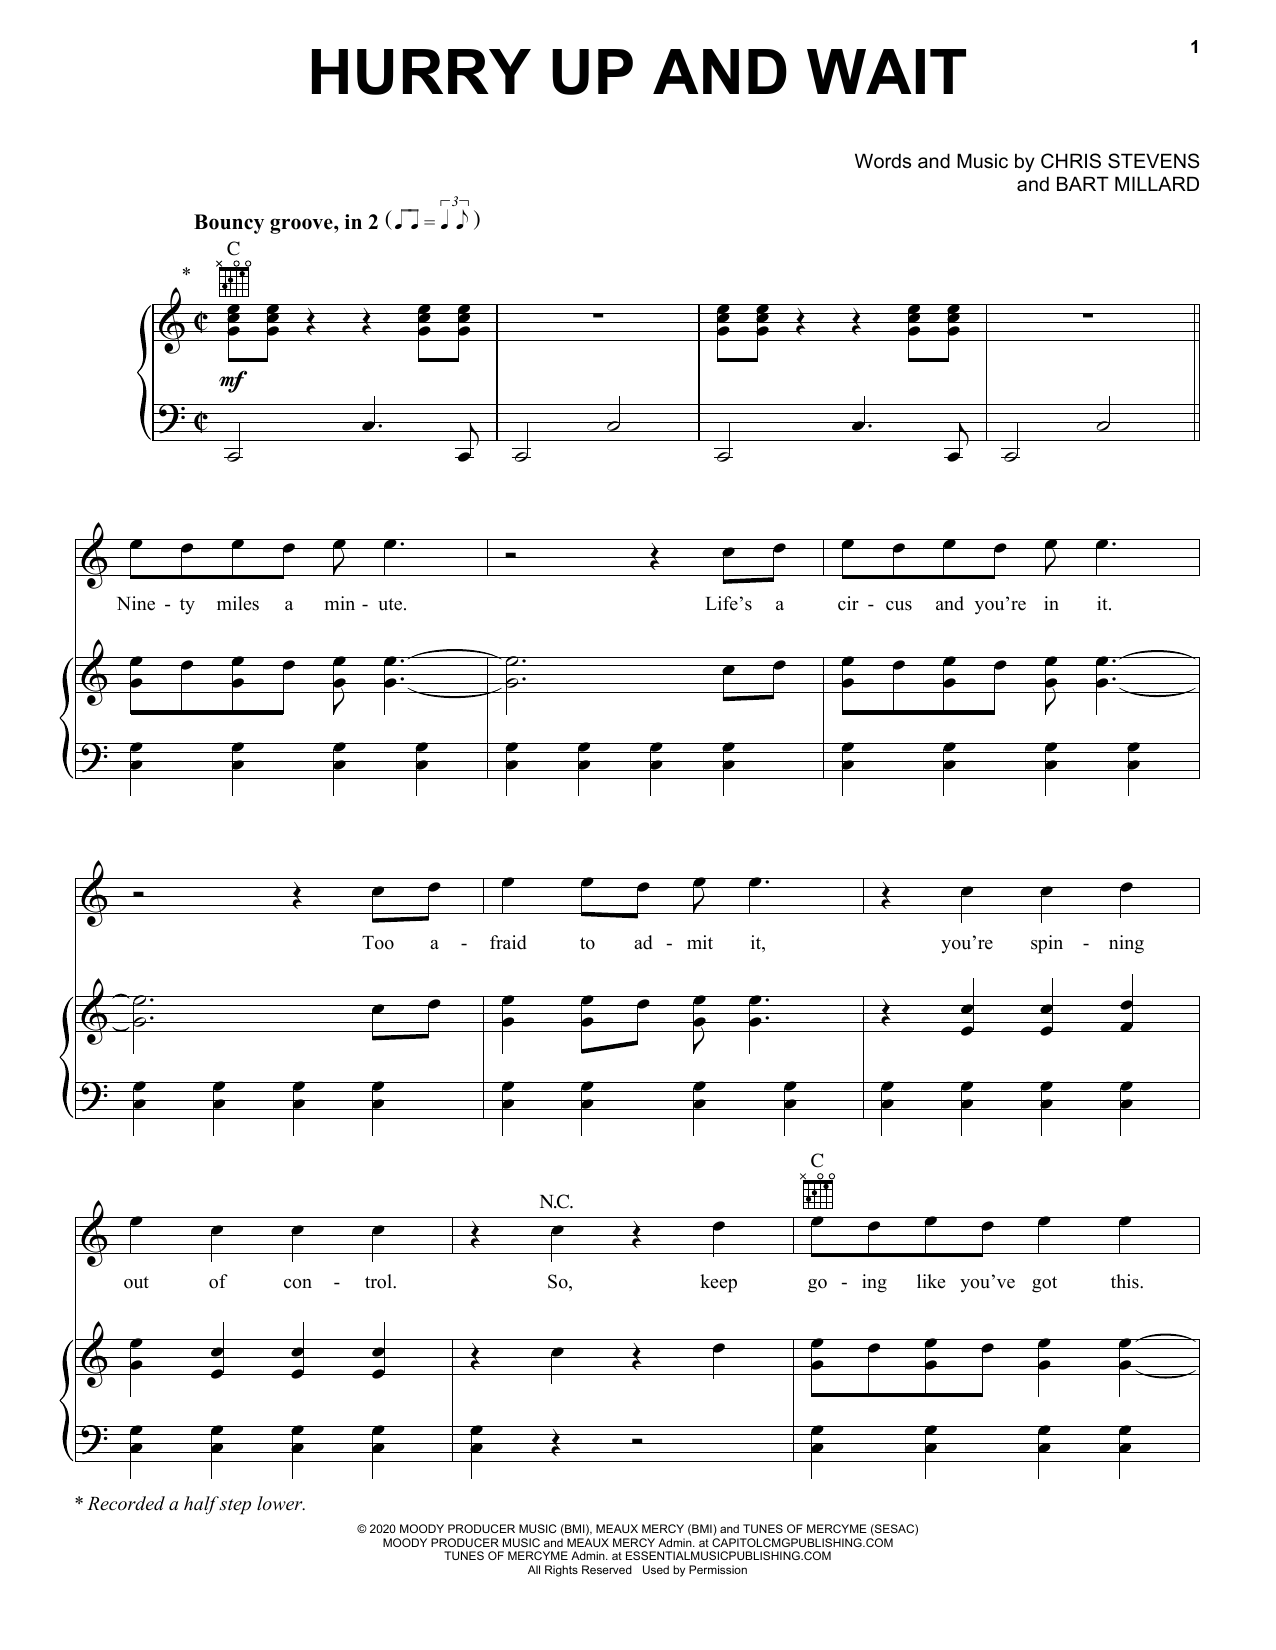 MercyMe Hurry Up And Wait sheet music notes and chords. Download Printable PDF.